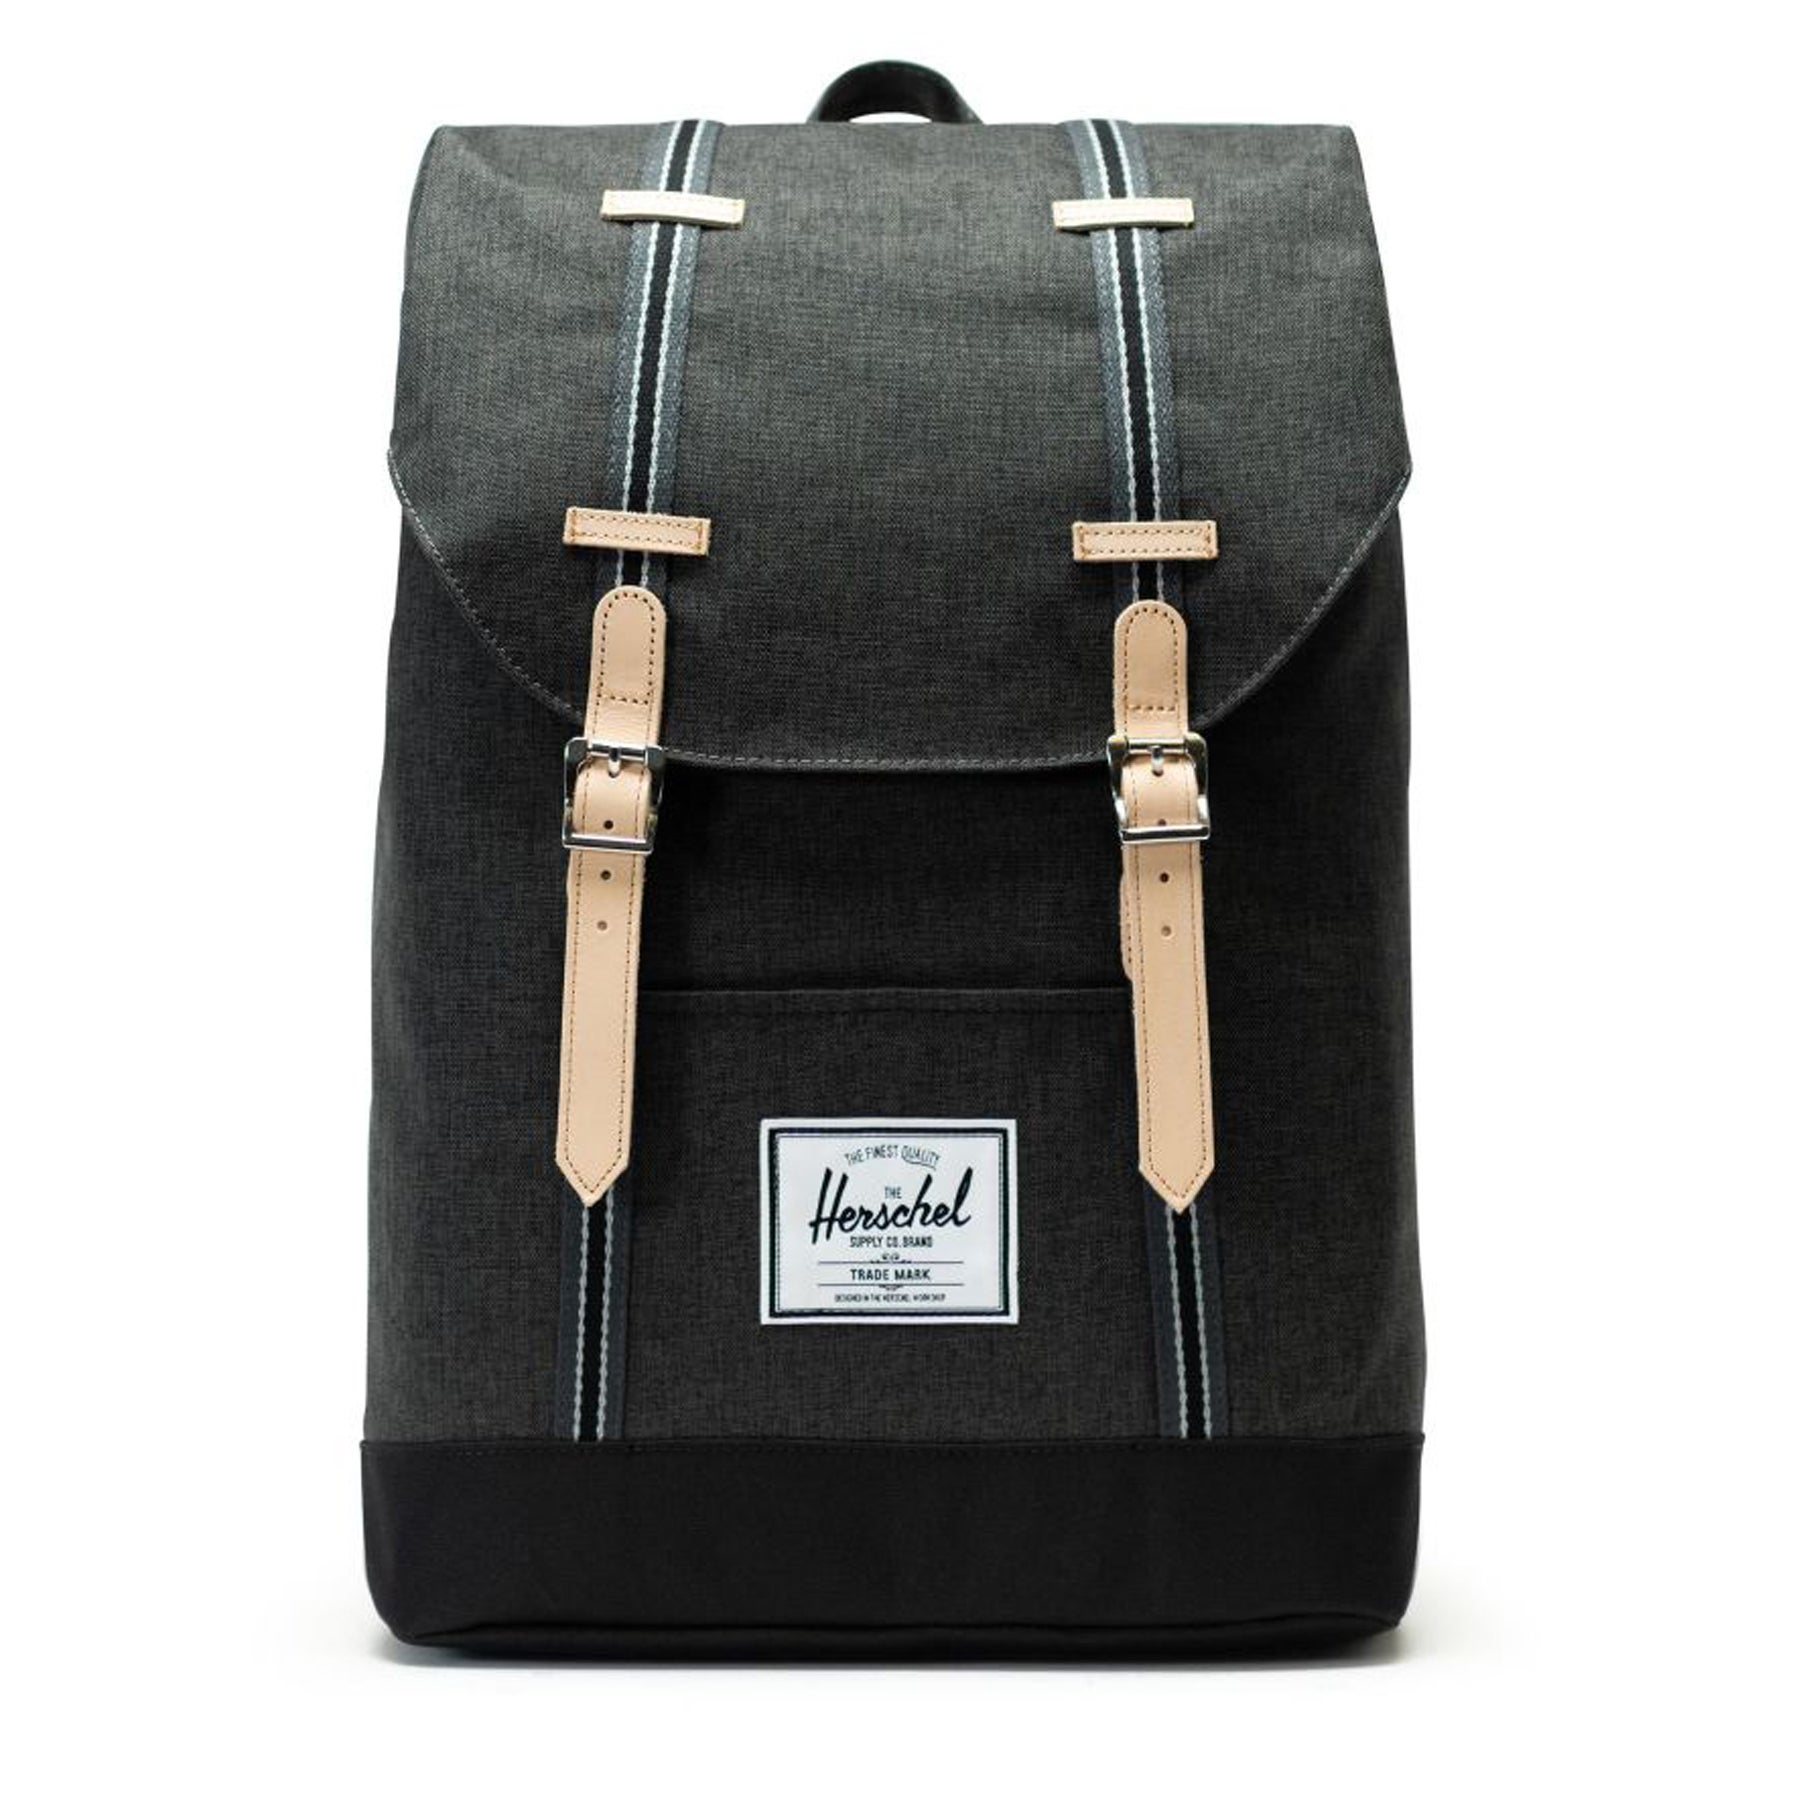 Herschel Retreat Backpack - Black Crosshatch black